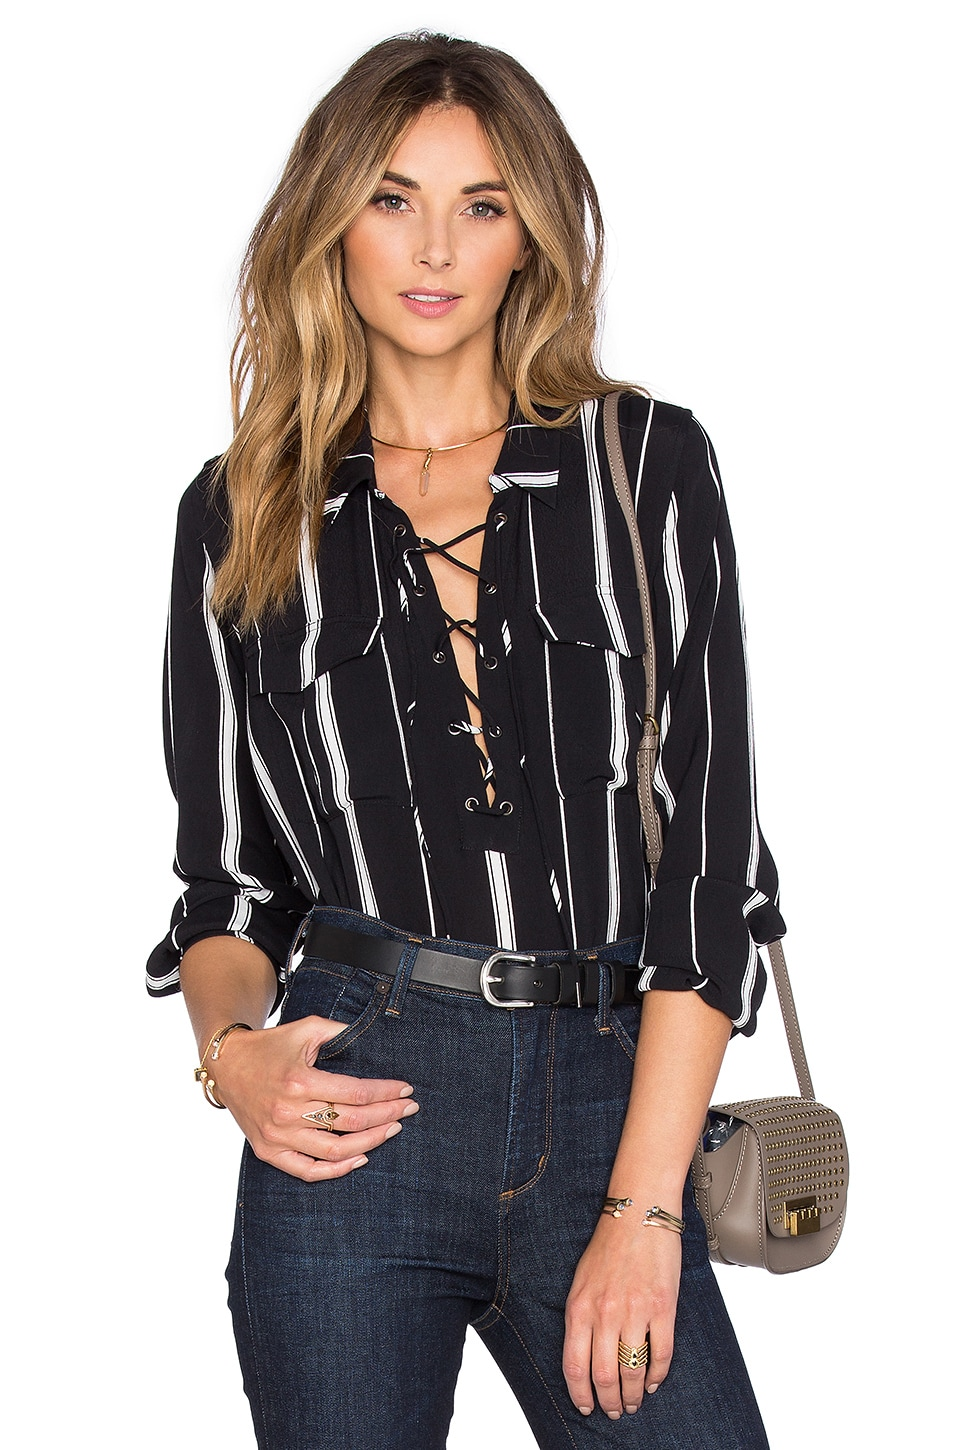 L'Academie x REVOLVE The Safari Blouse in Beige Stripe